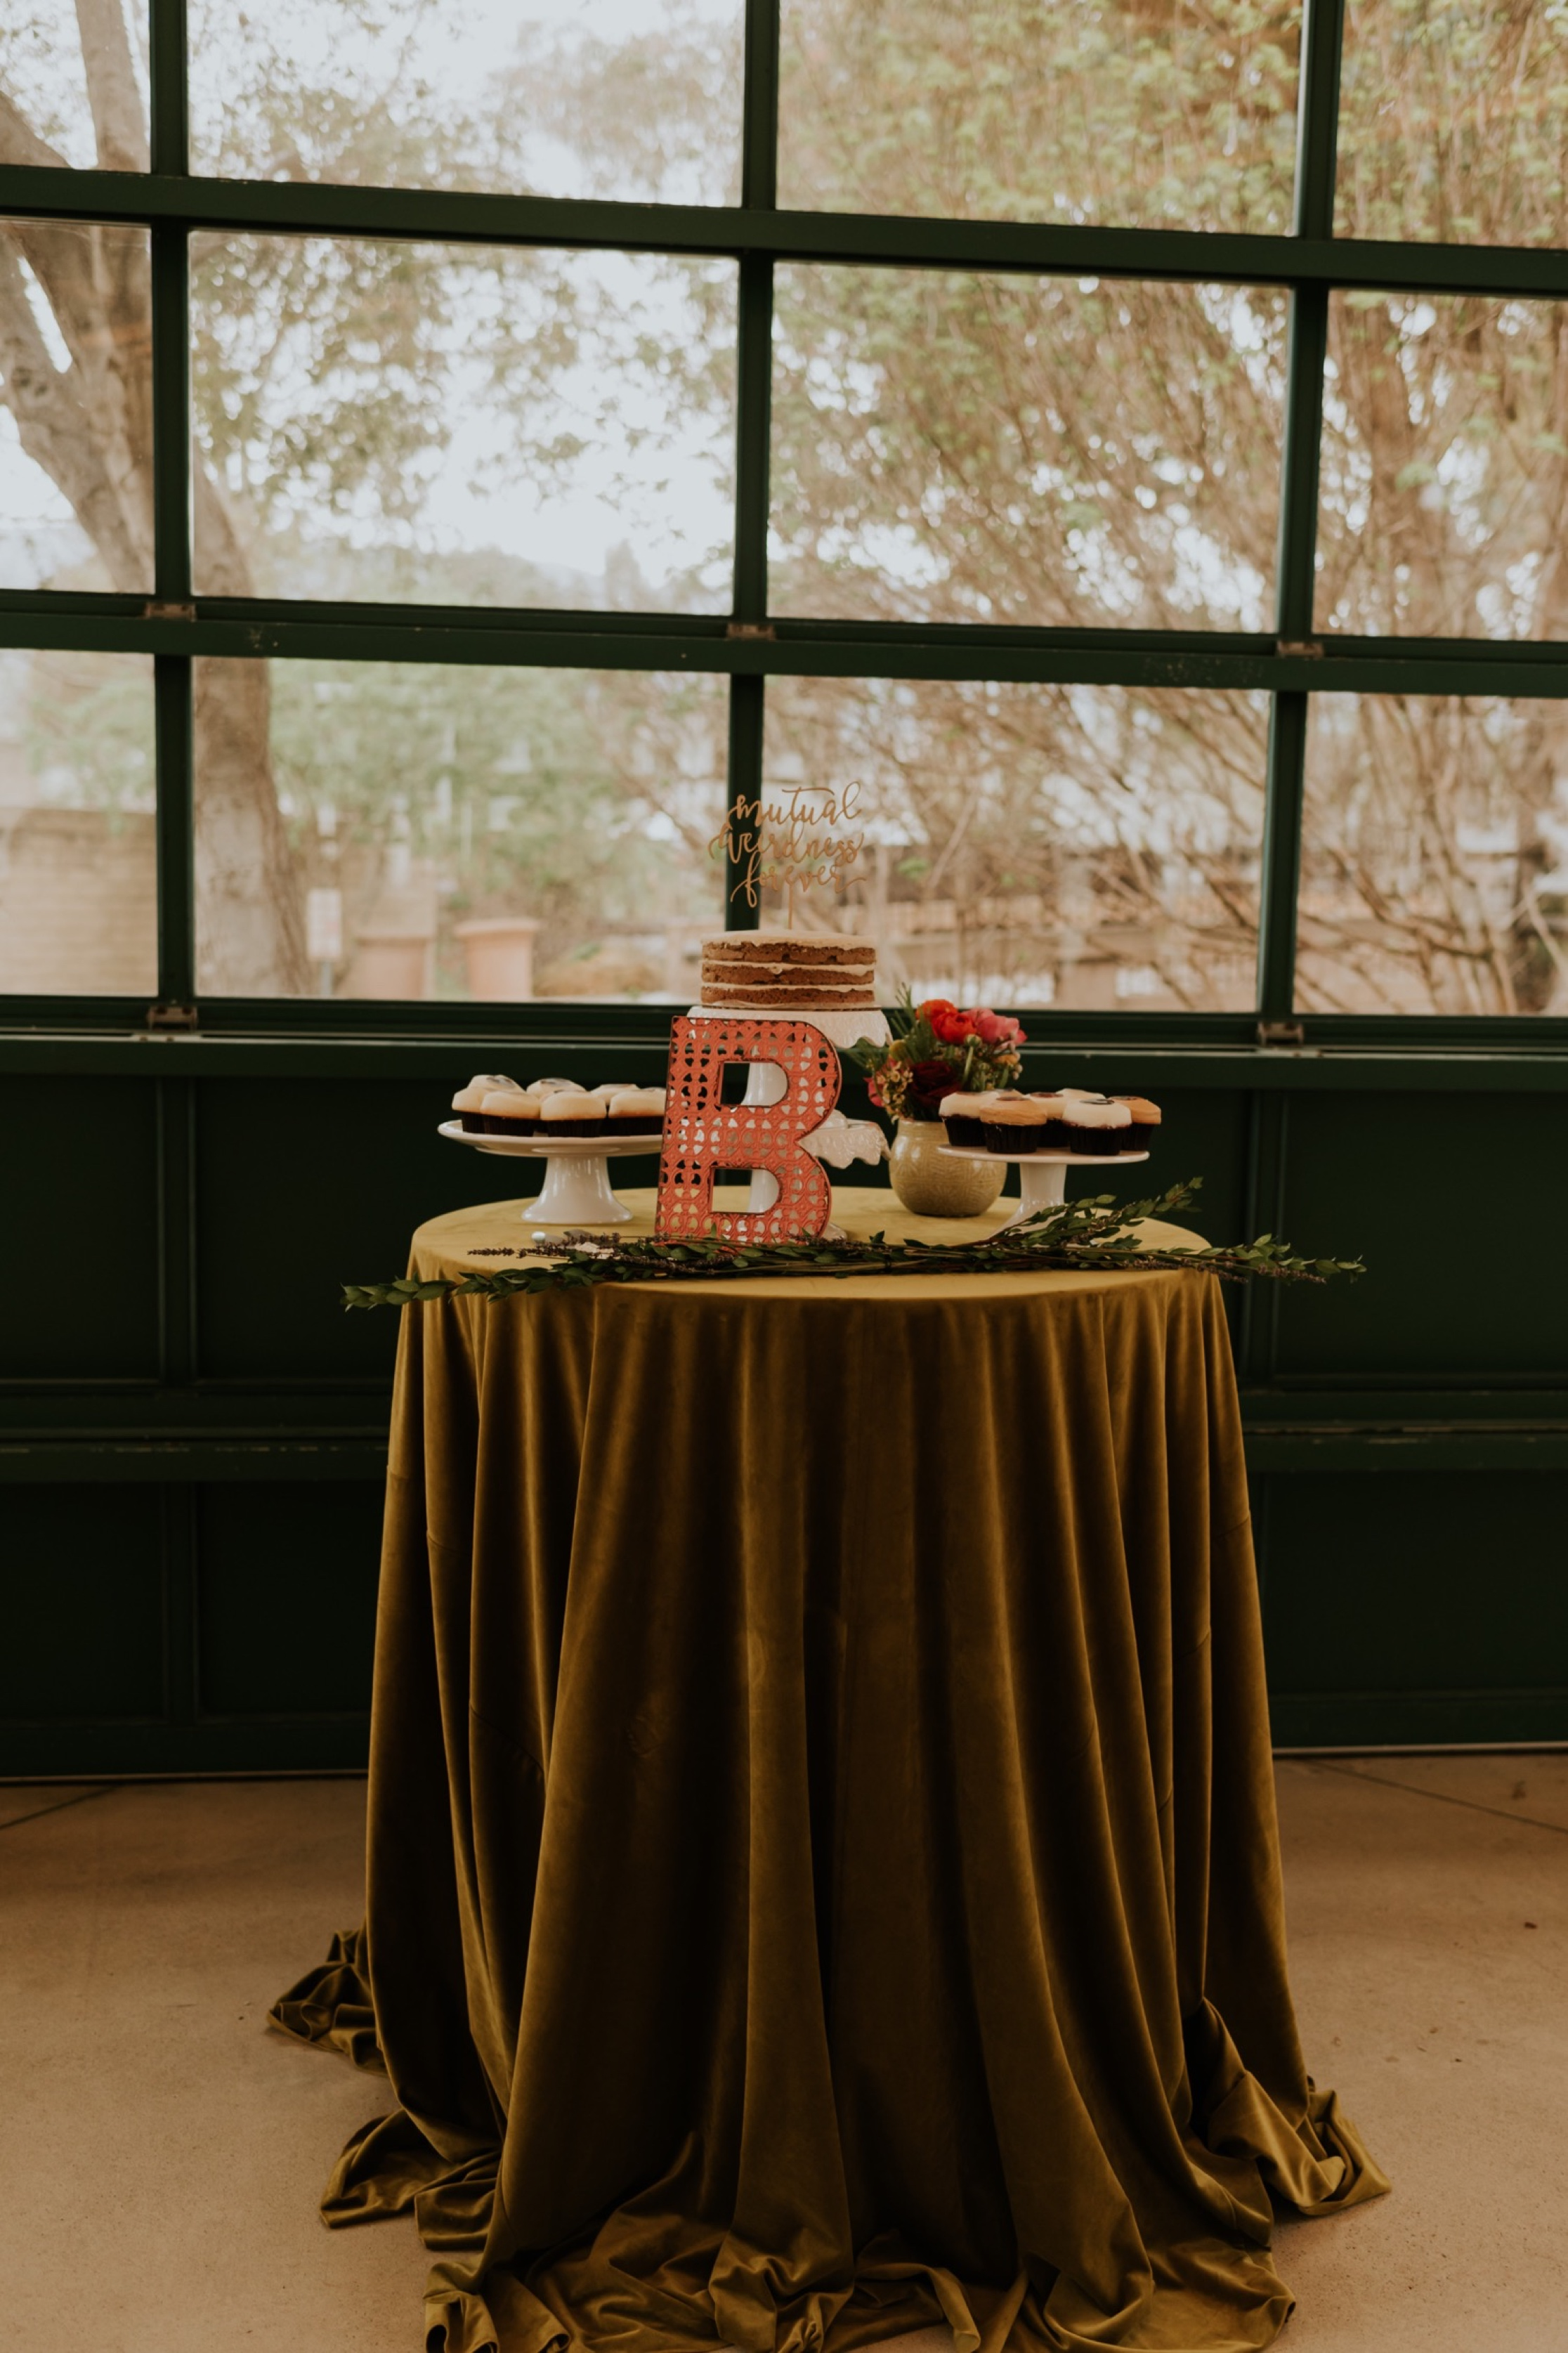 Santa Barbara Wedding at the Carousel House | Reception Details | Wedding Cake Table | Carrie Rogers Photography